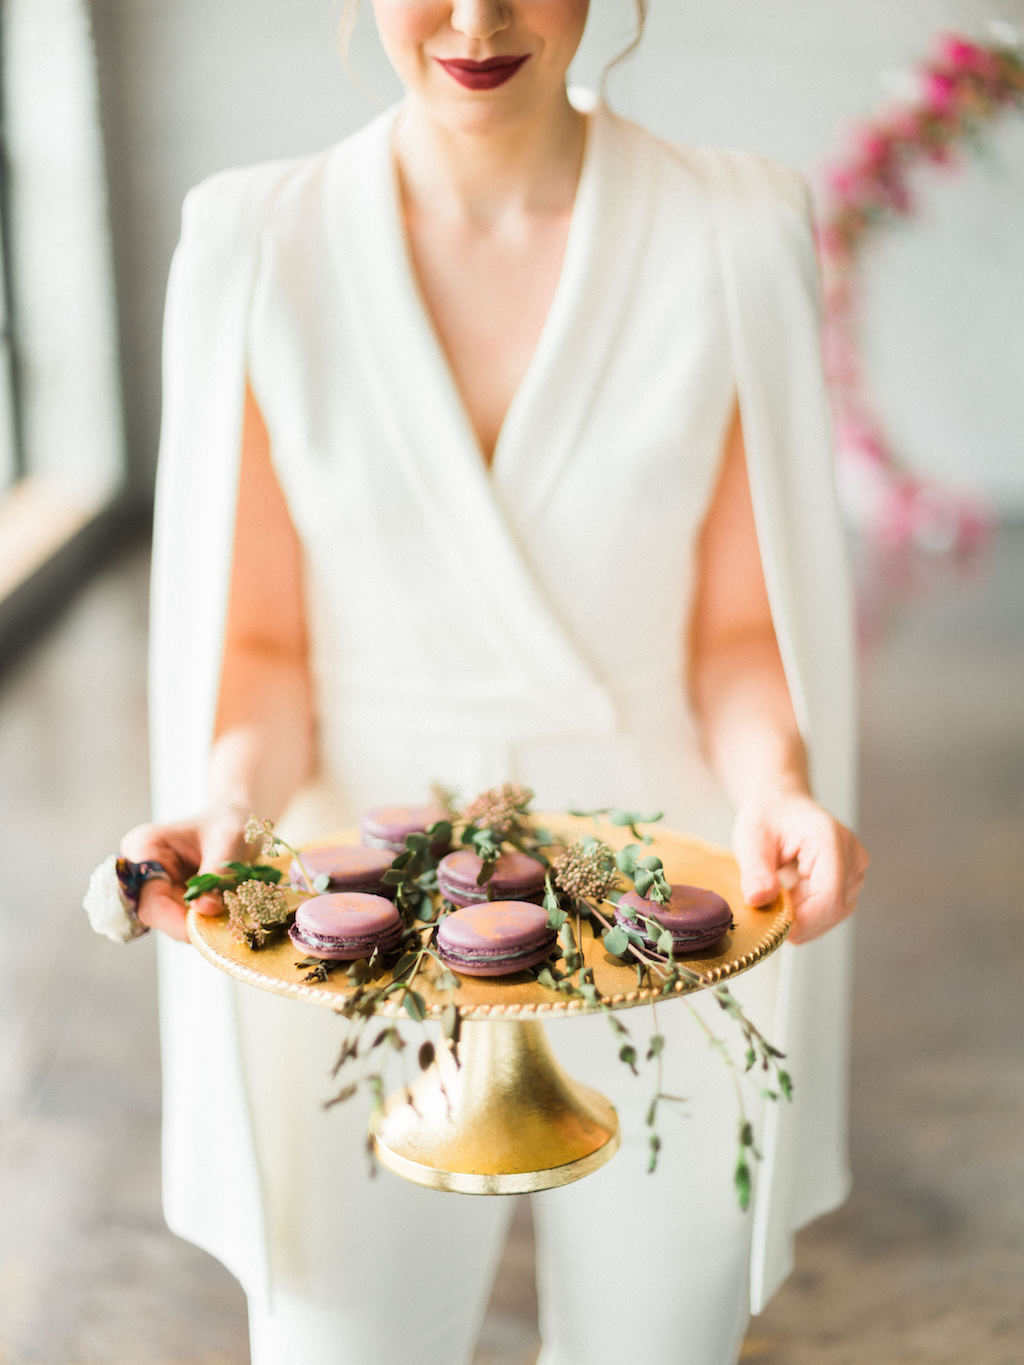 Bride in Lavish Alice White Jumpsuit with Cape with Modern Wedding Gold and Purple Macaroons on Gold Cake Stand with dried greenery